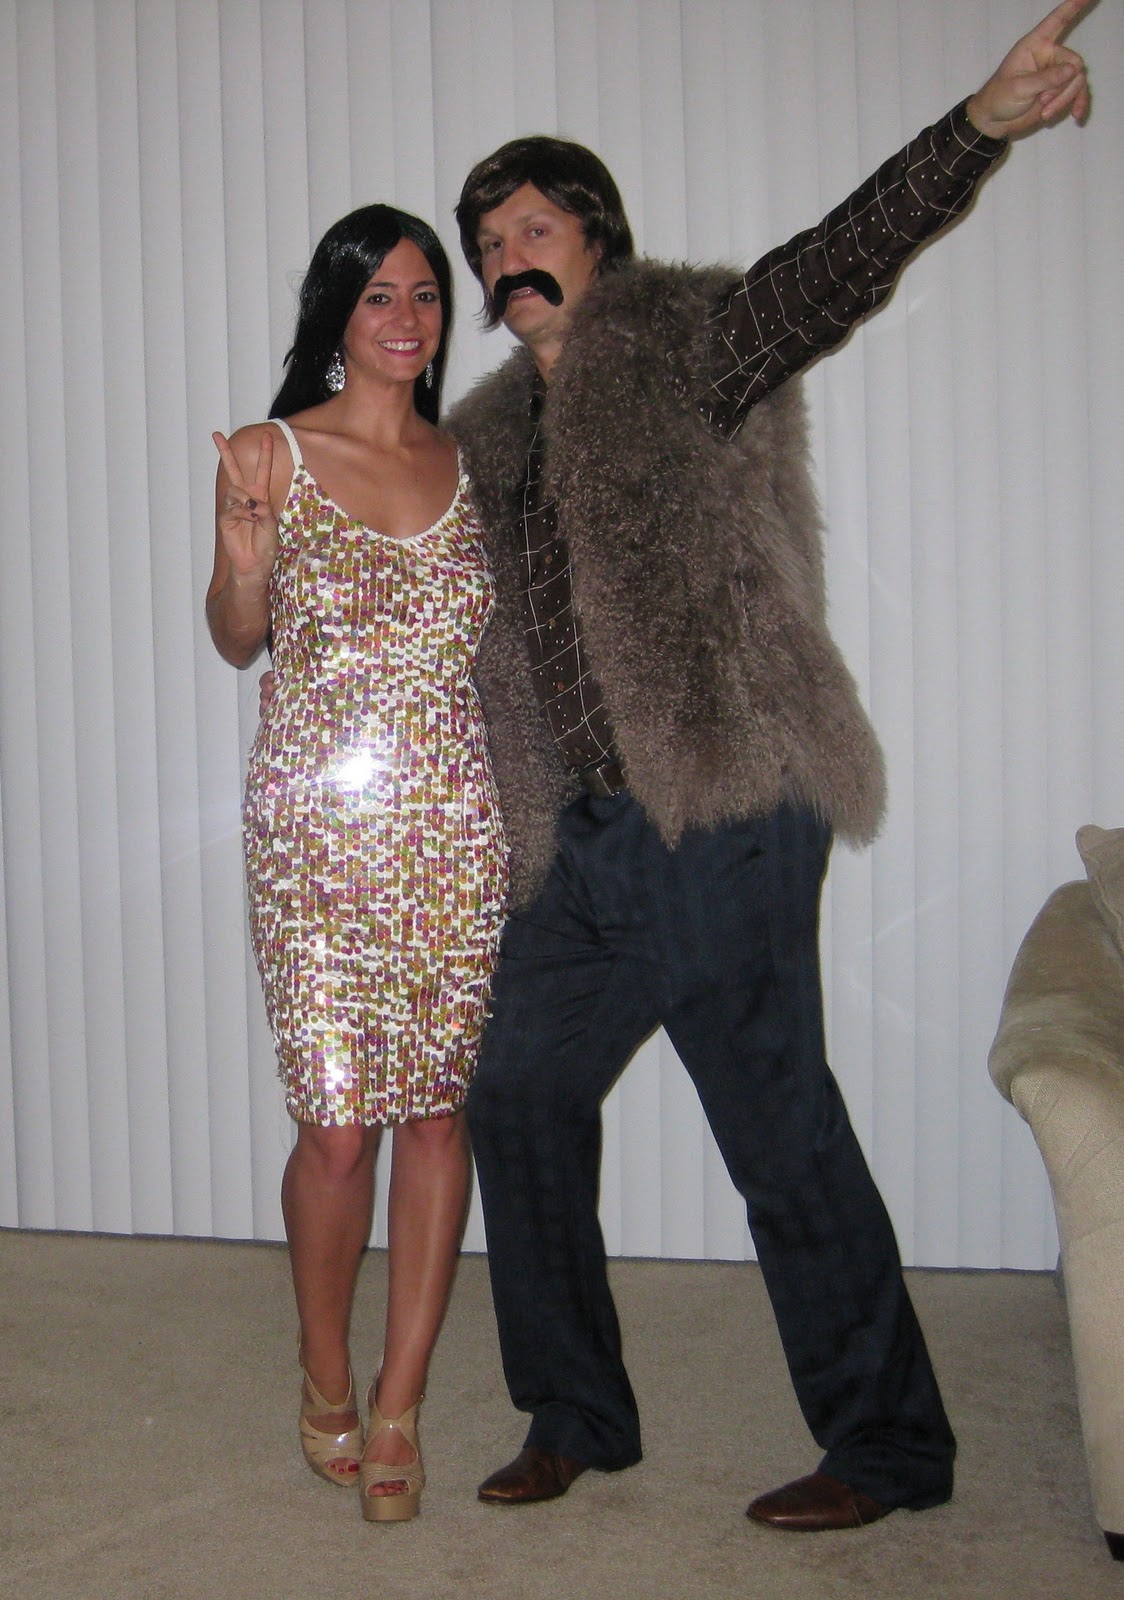 Sonny u0026 Cher Halloween Costumes  sc 1 st  Bedazzles After Dark : cher costume ideas  - Germanpascual.Com